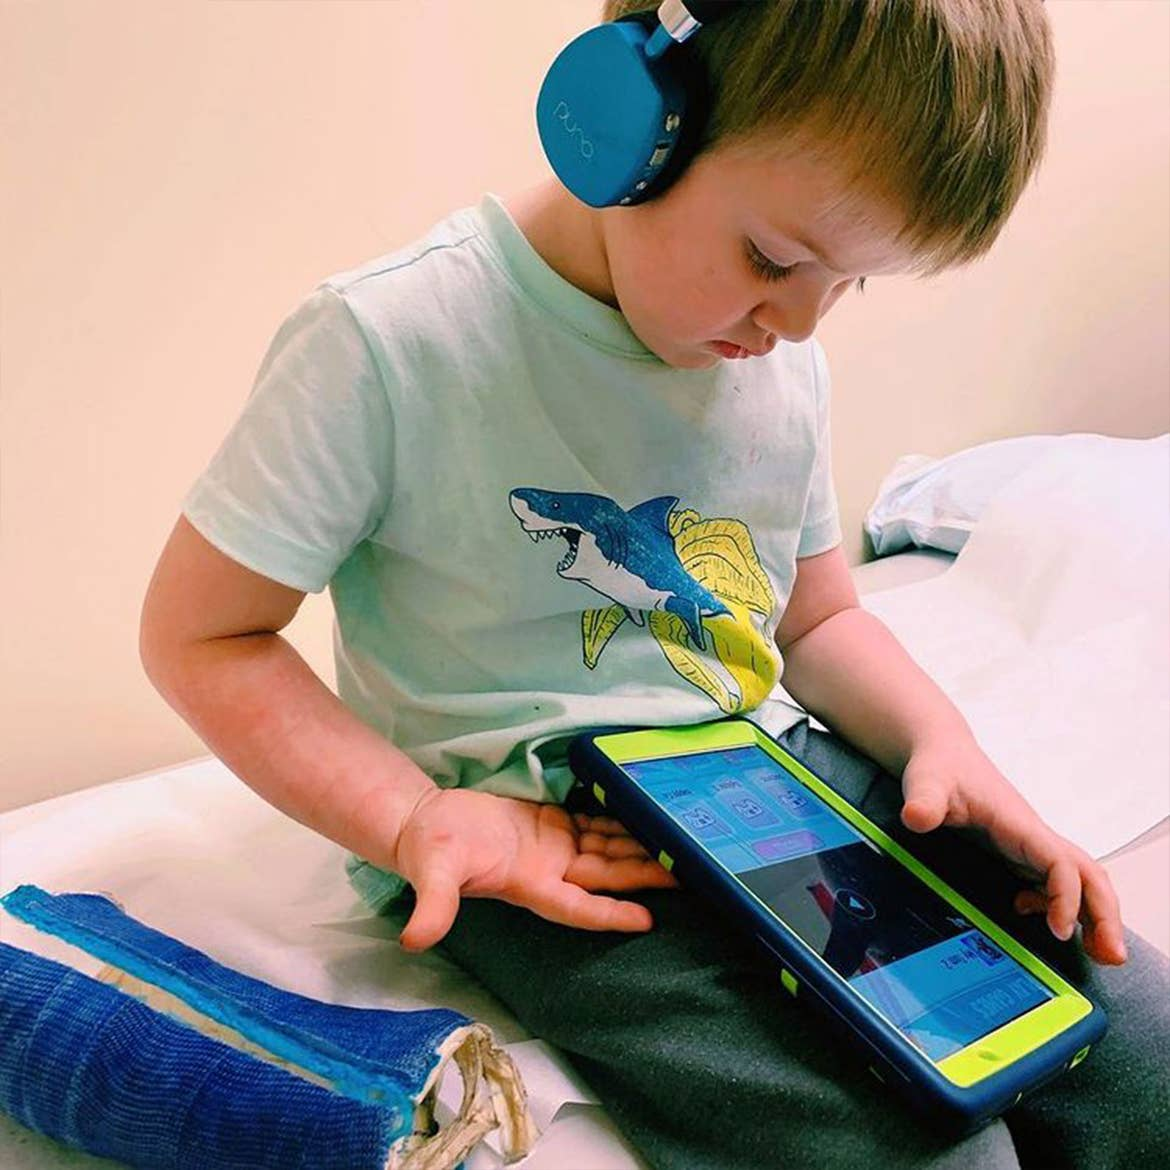 Featured Contributor, Alicia Trautwein's son holds an iPad while wearing headphones.